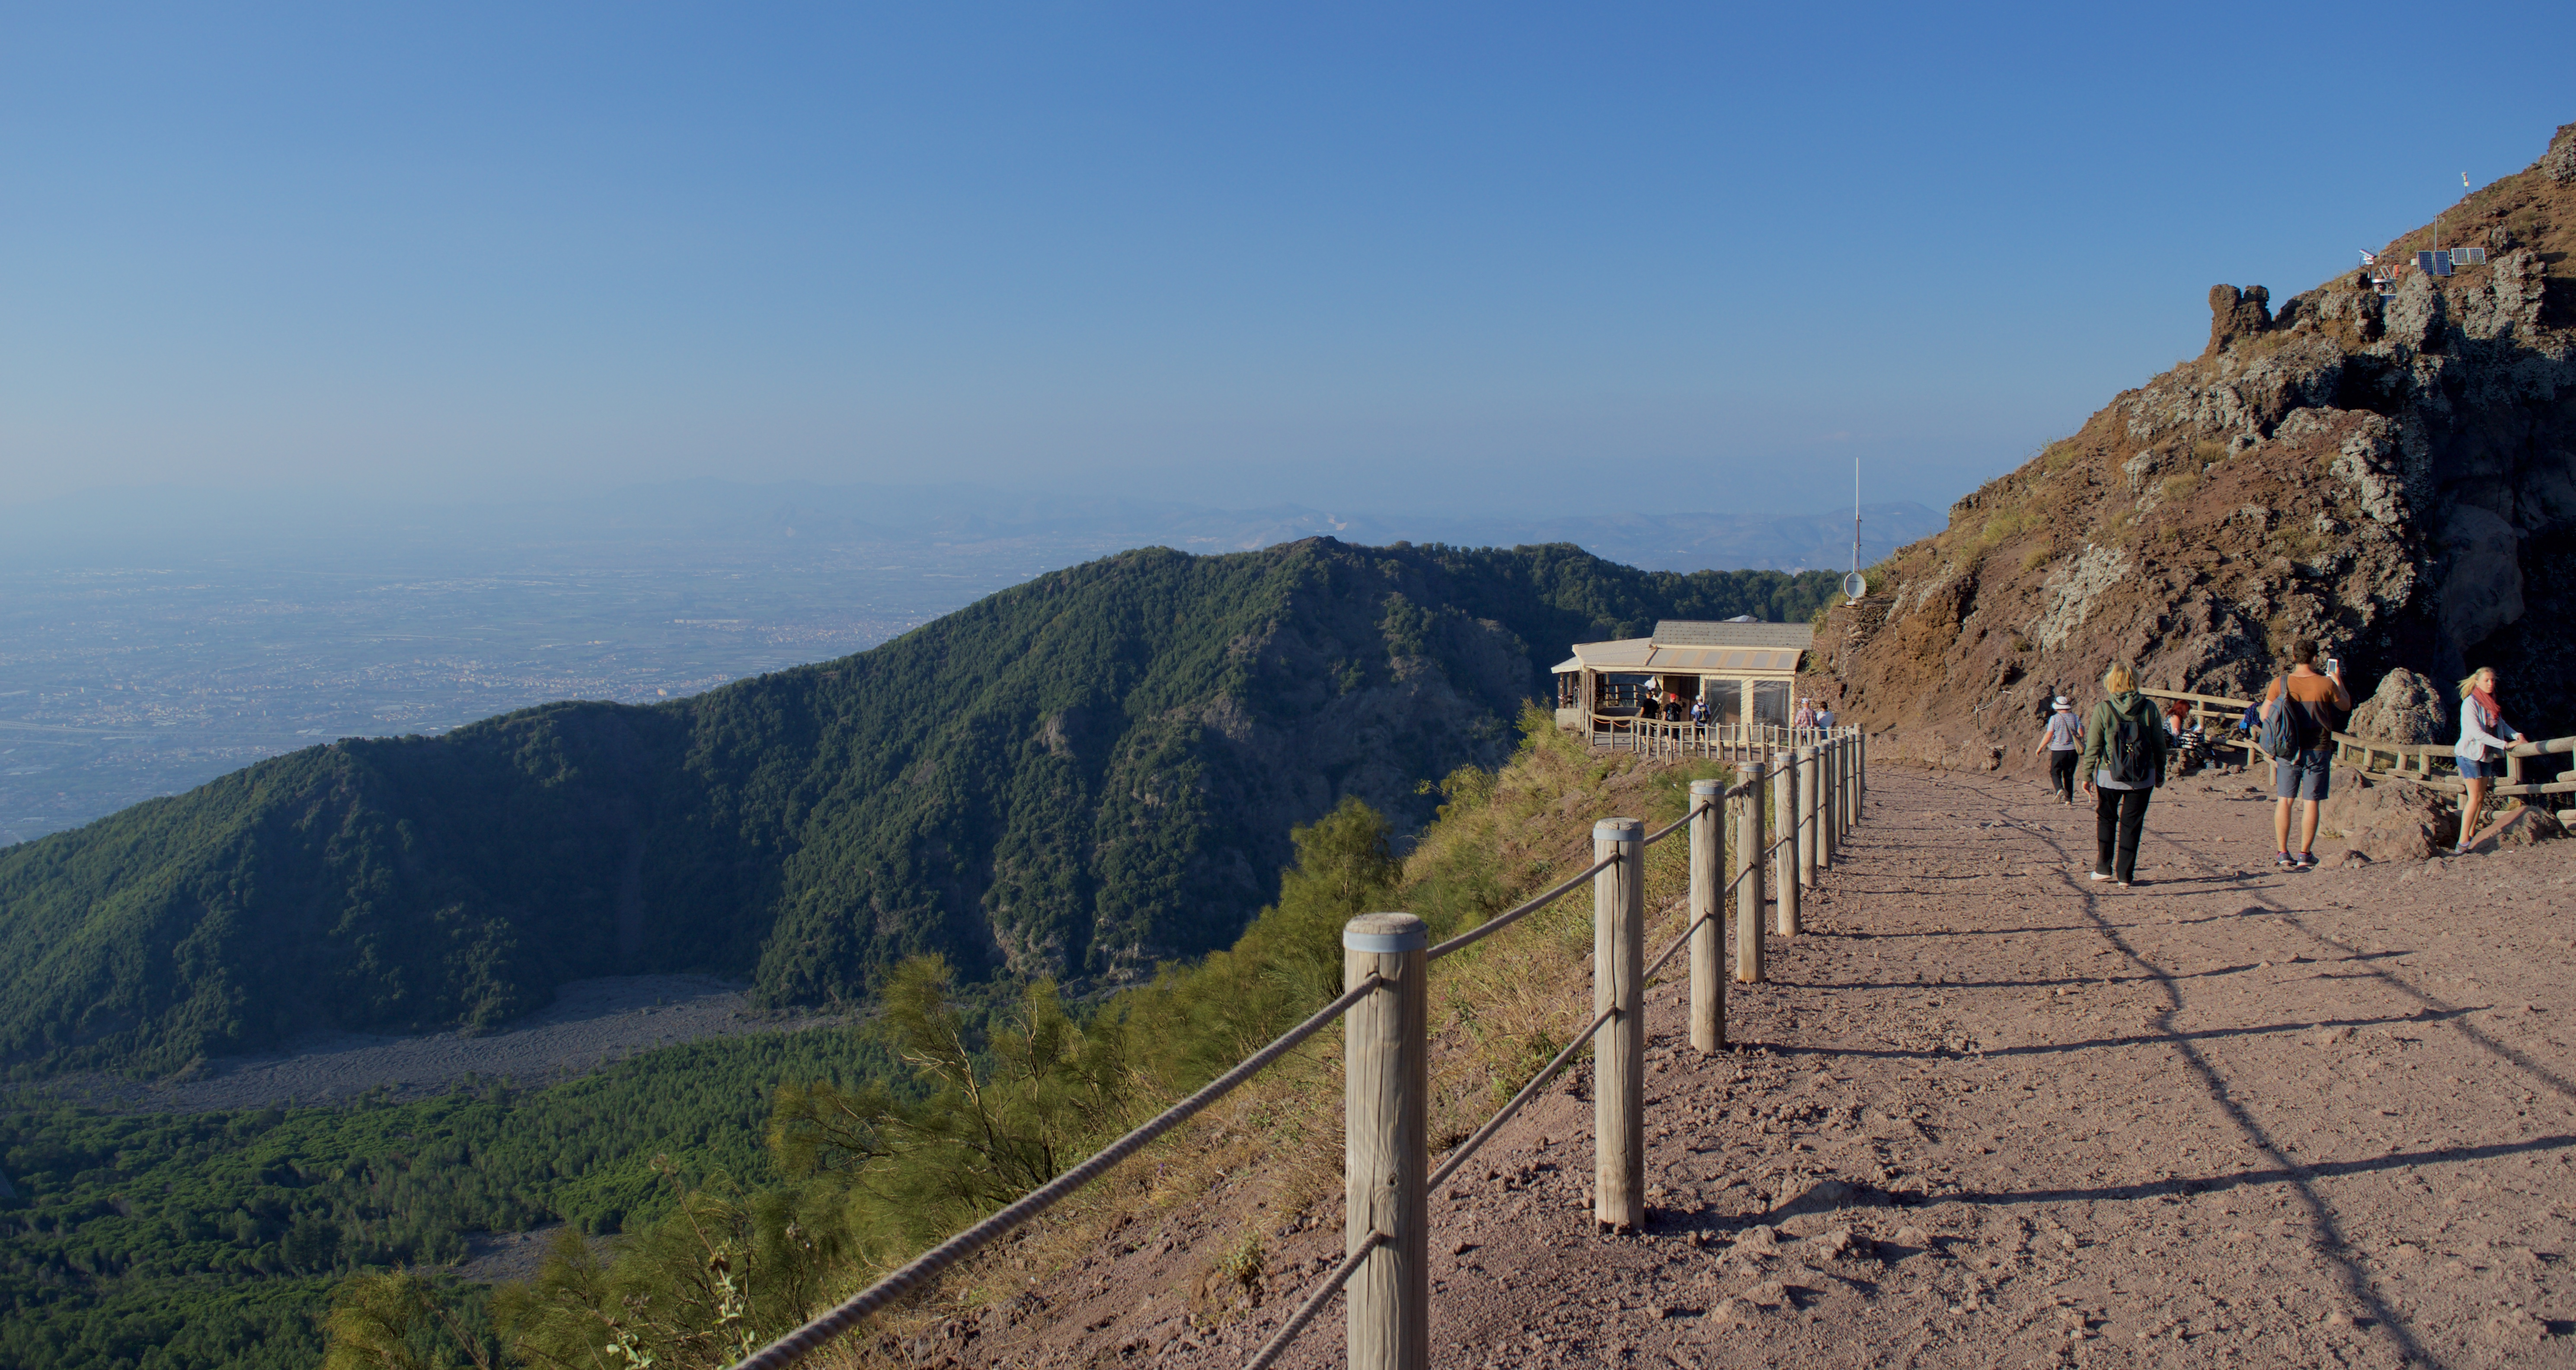 View from the summit of Mount Vesuvius